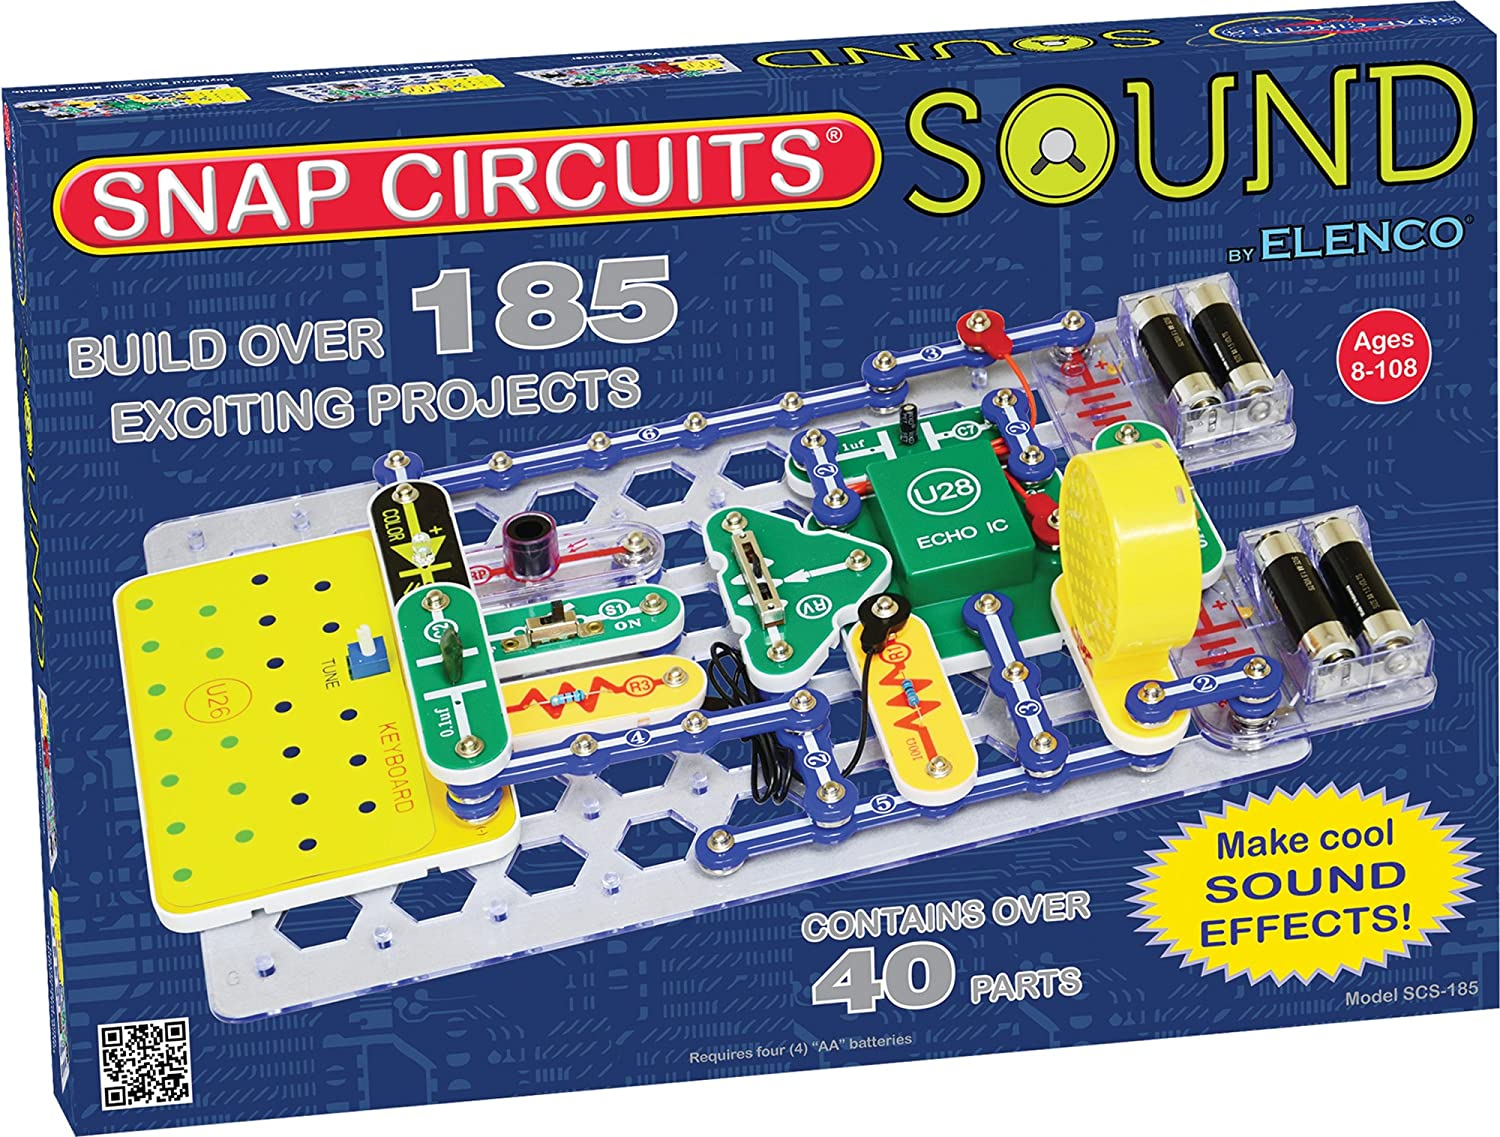 Snap Circuits Sound Electronics Discovery Kit Toys Games Learn About With Junior